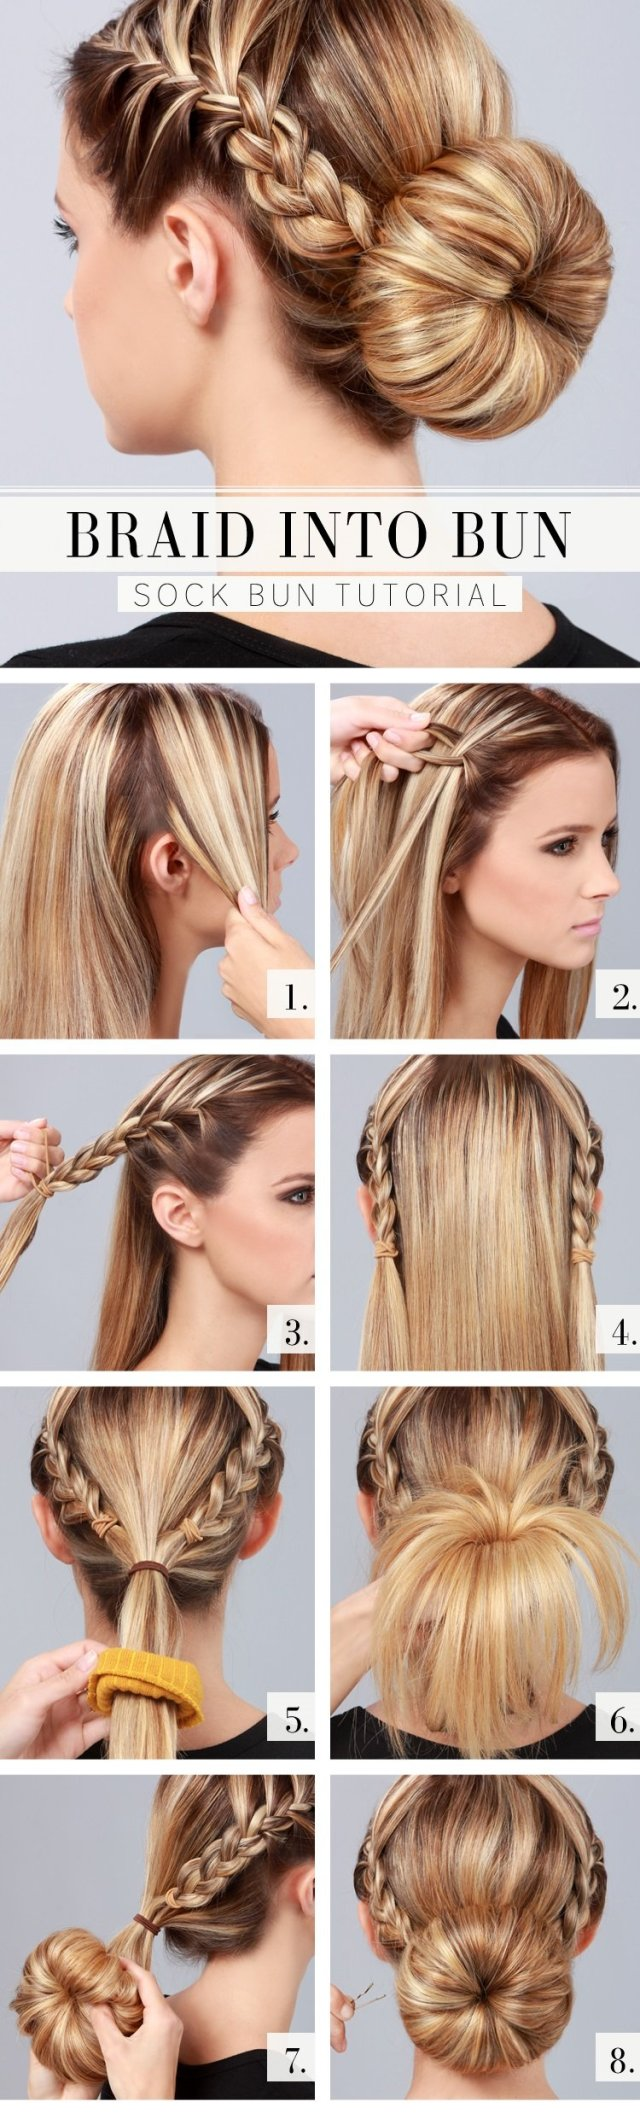 19 bridal hairstyle tutorials for savvy brides - wild about